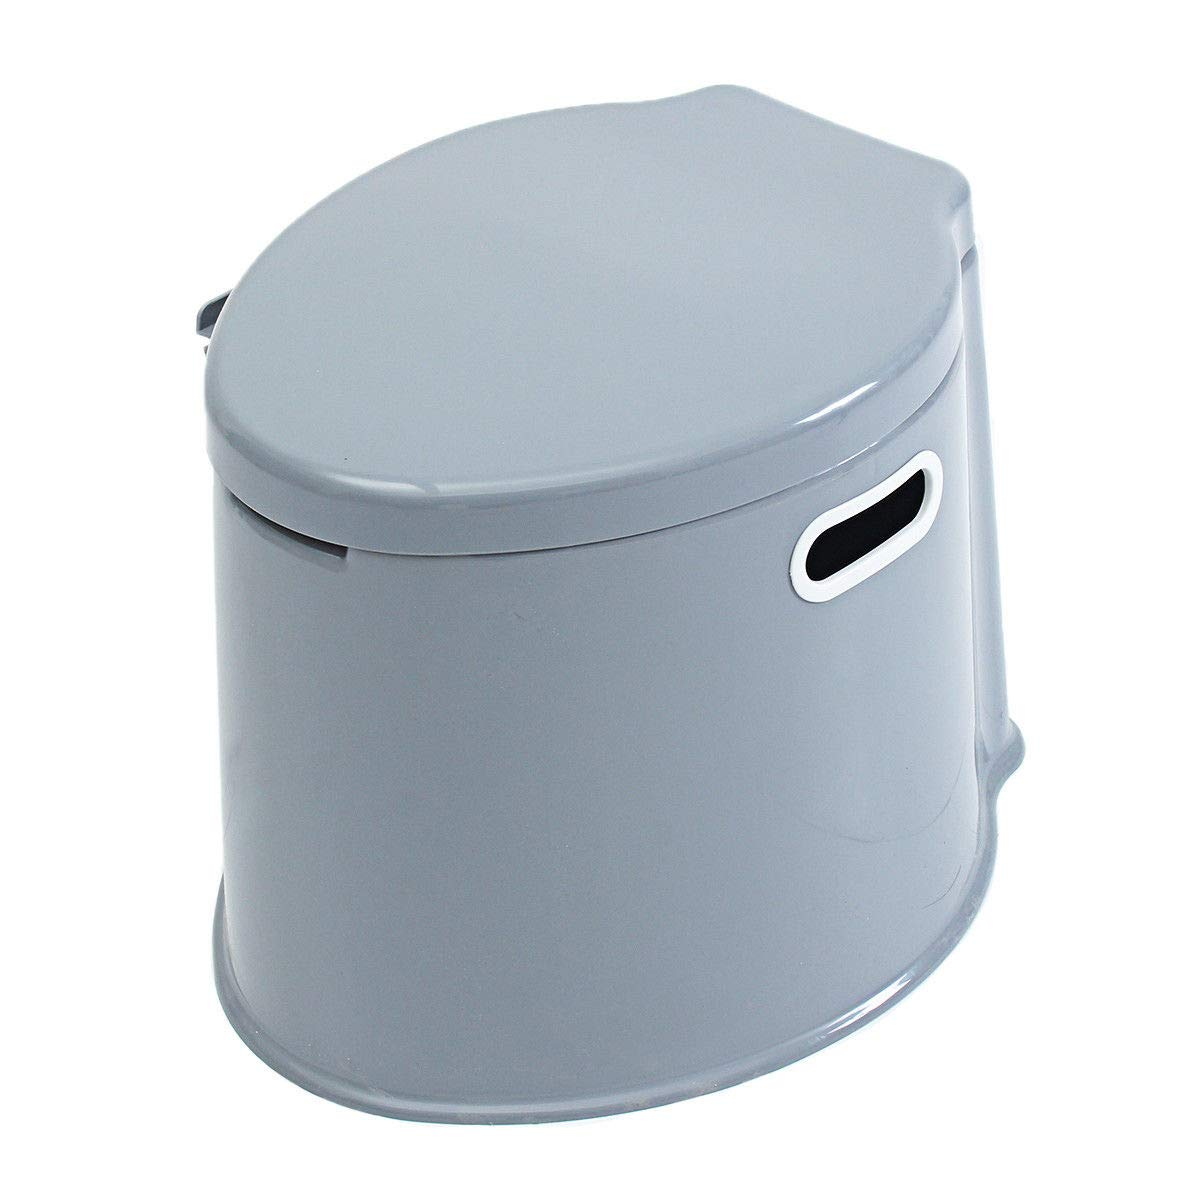 GJH One 1.32-Gallon 5L Portable Toilet Flush Potty Commode Travel Camping Indoor Outdoor